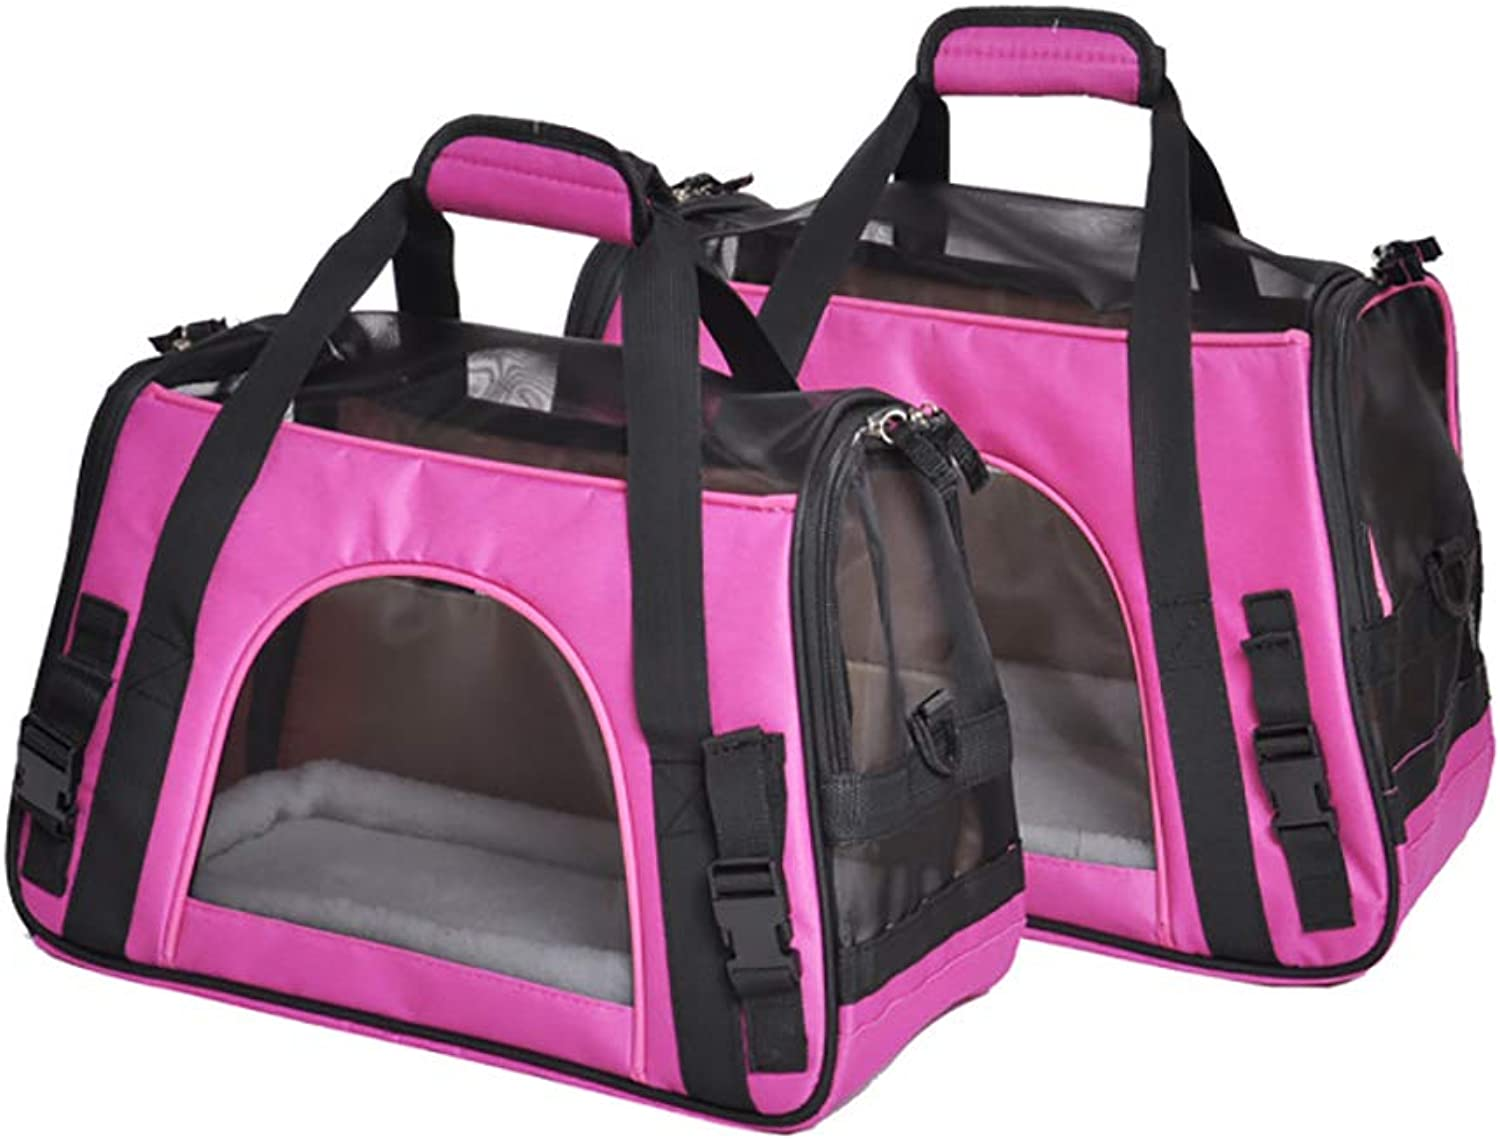 QNMM Pet Portable Backpack Dog Outing Tote Collapsible Pet Travel Carrier Shoulder Bag For Small Dogs&Cats,pinkred,M